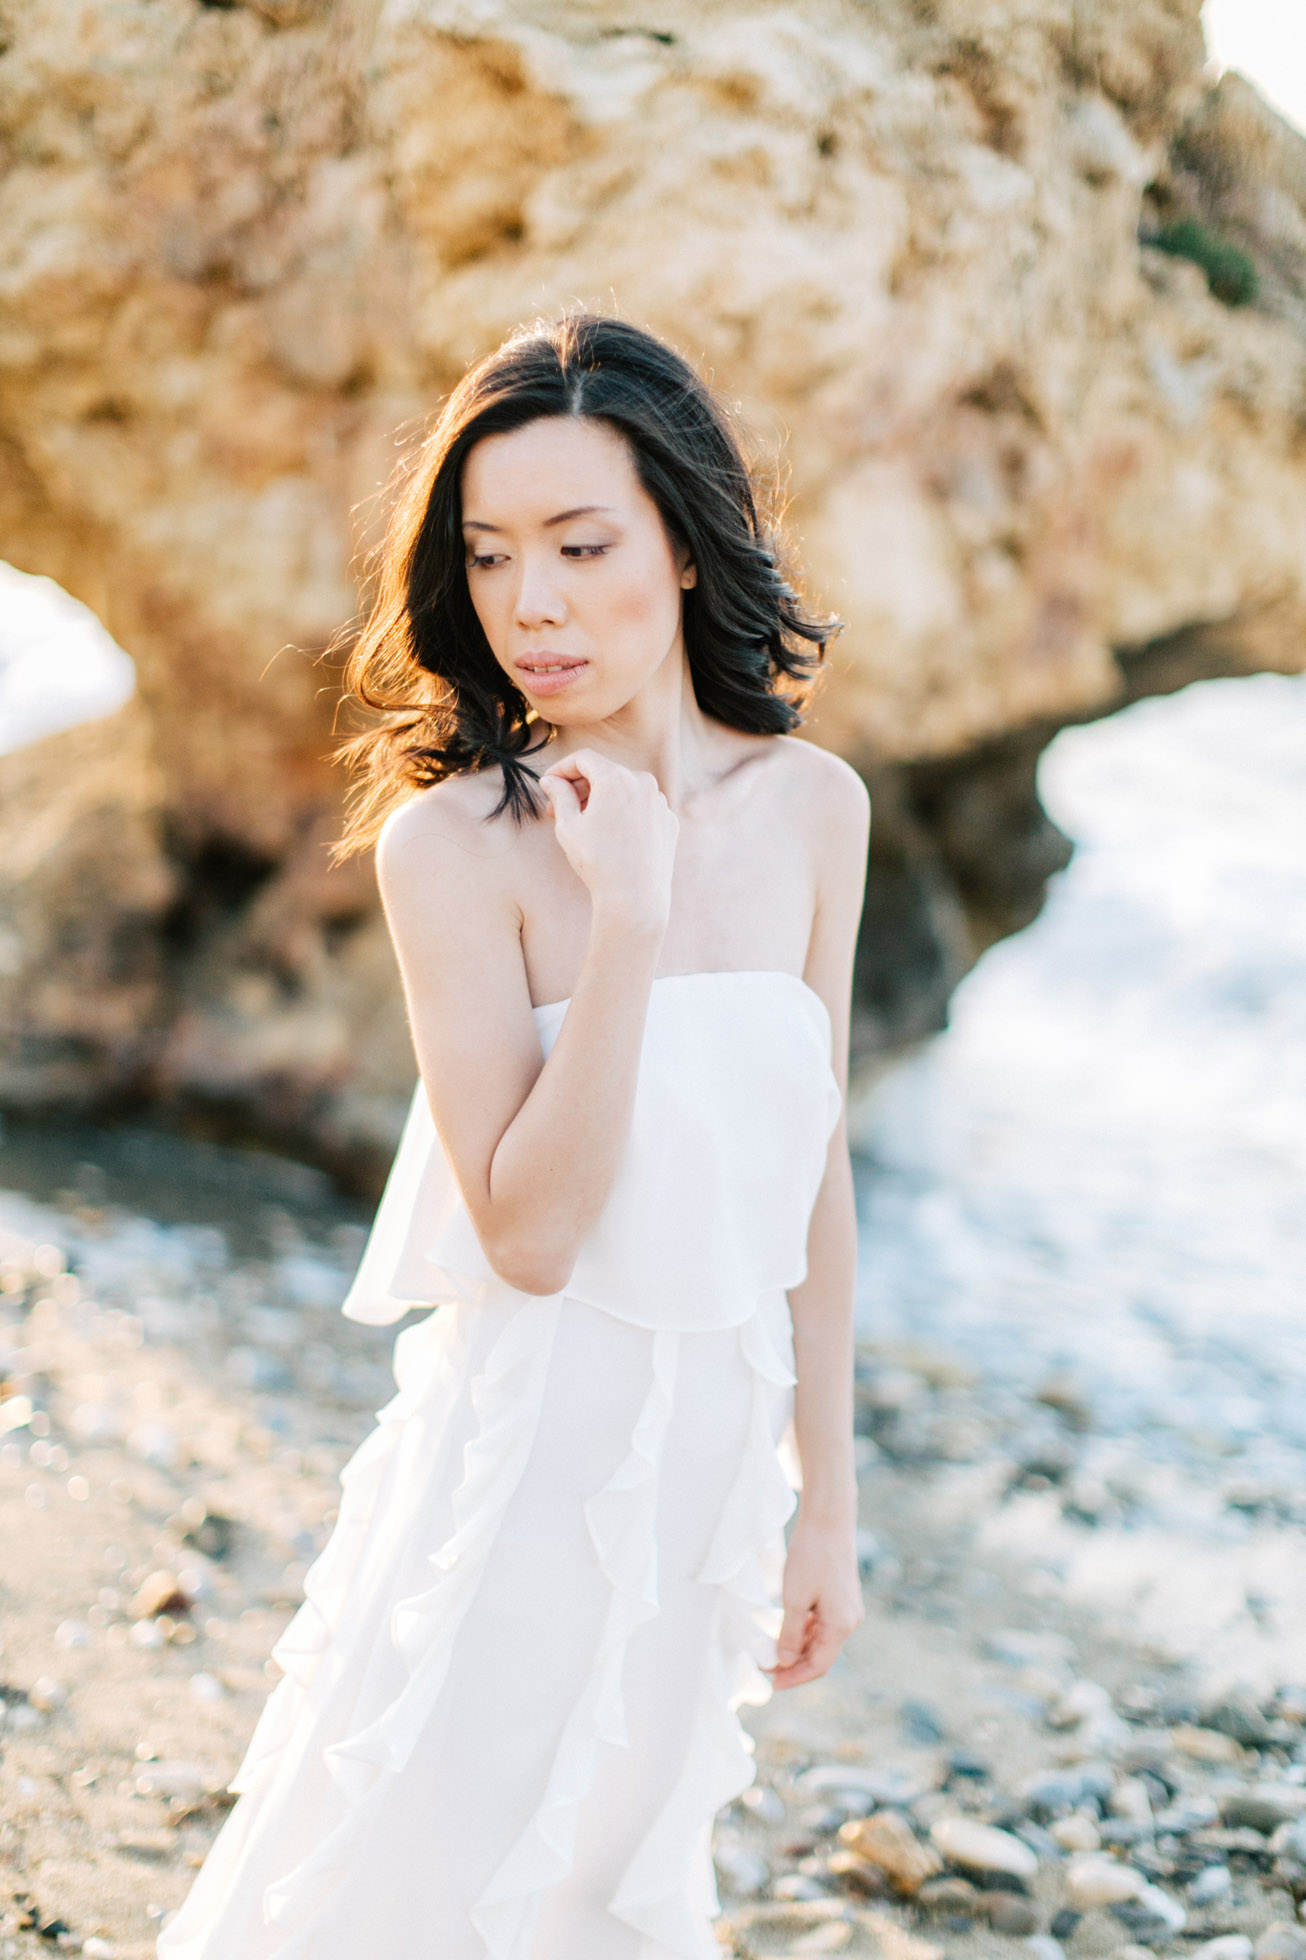 Beautiful destination bride wearing bridal dress is posing for professional photographer team during beach wedding photoshoot on the secluded shores of Rethymno town, Crete, Greece.